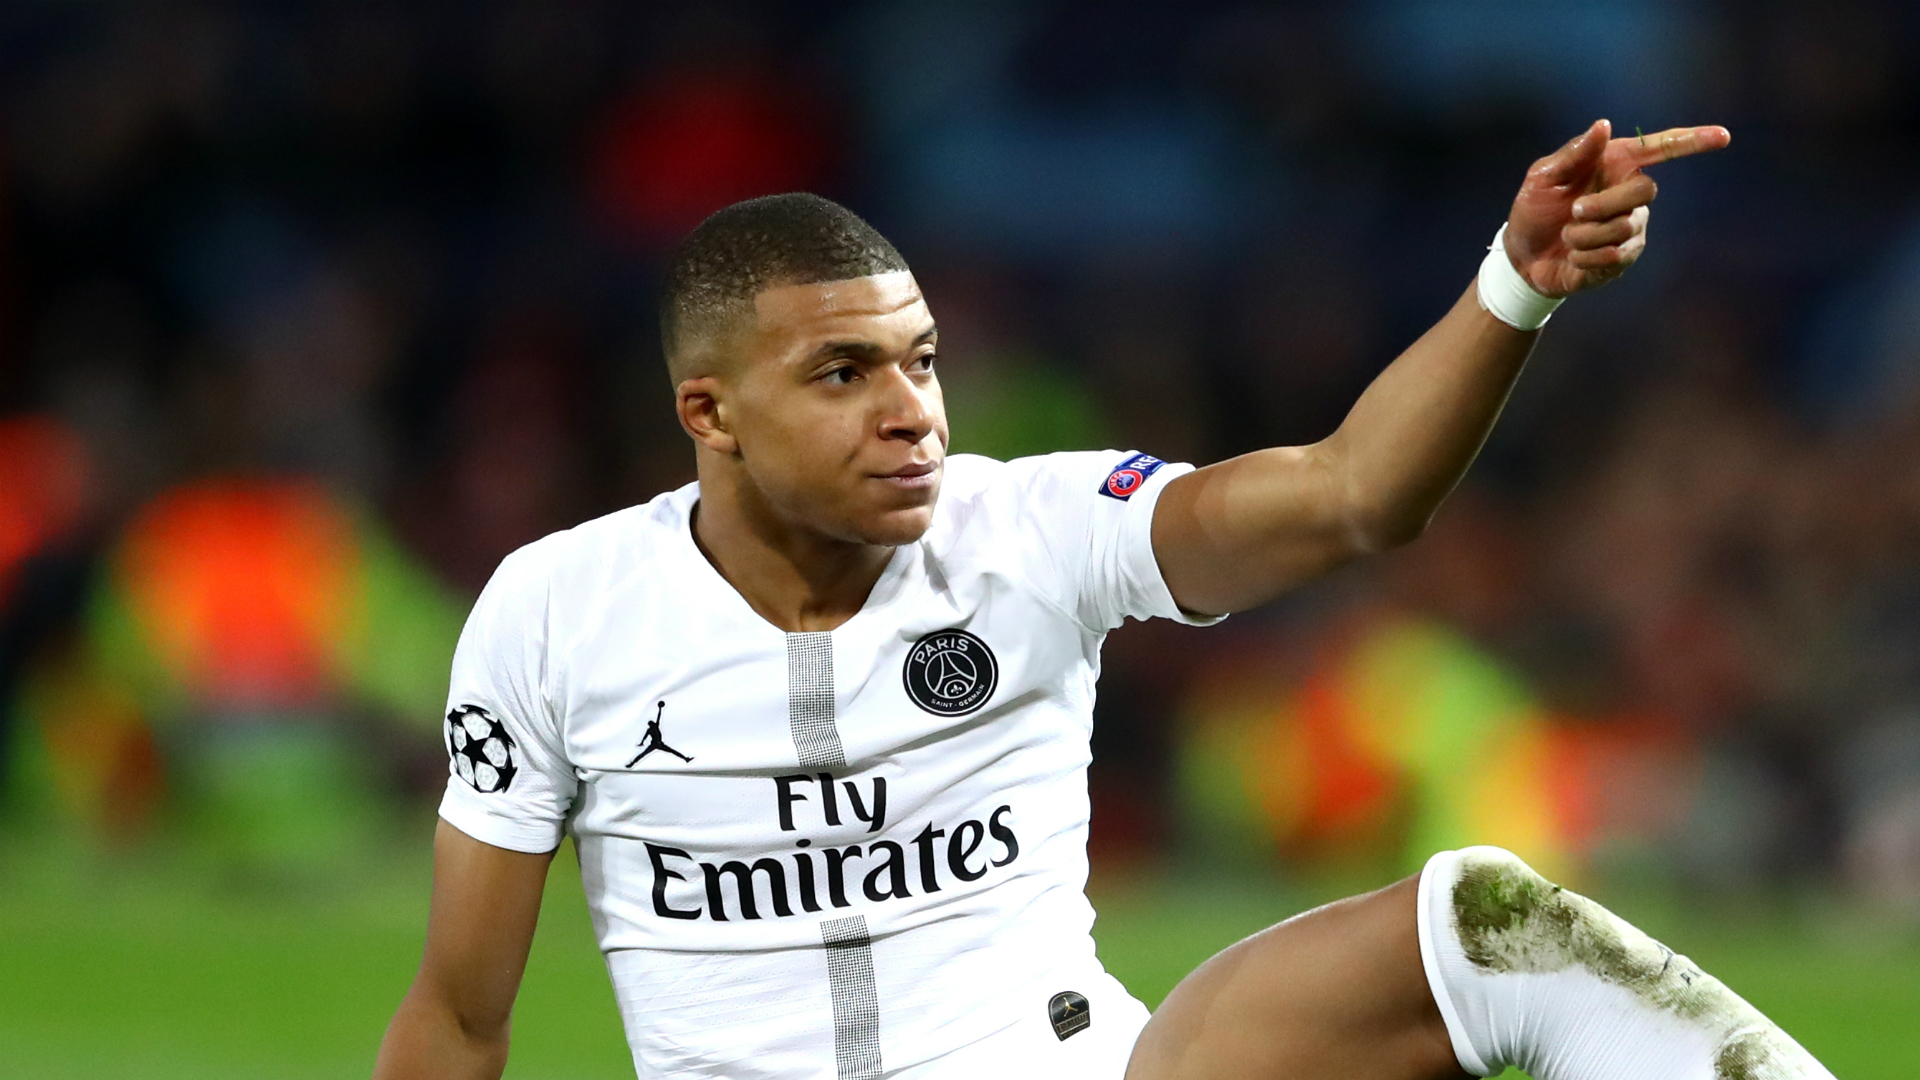 Mbappe tells PSG not to feel fear after Man Utd win